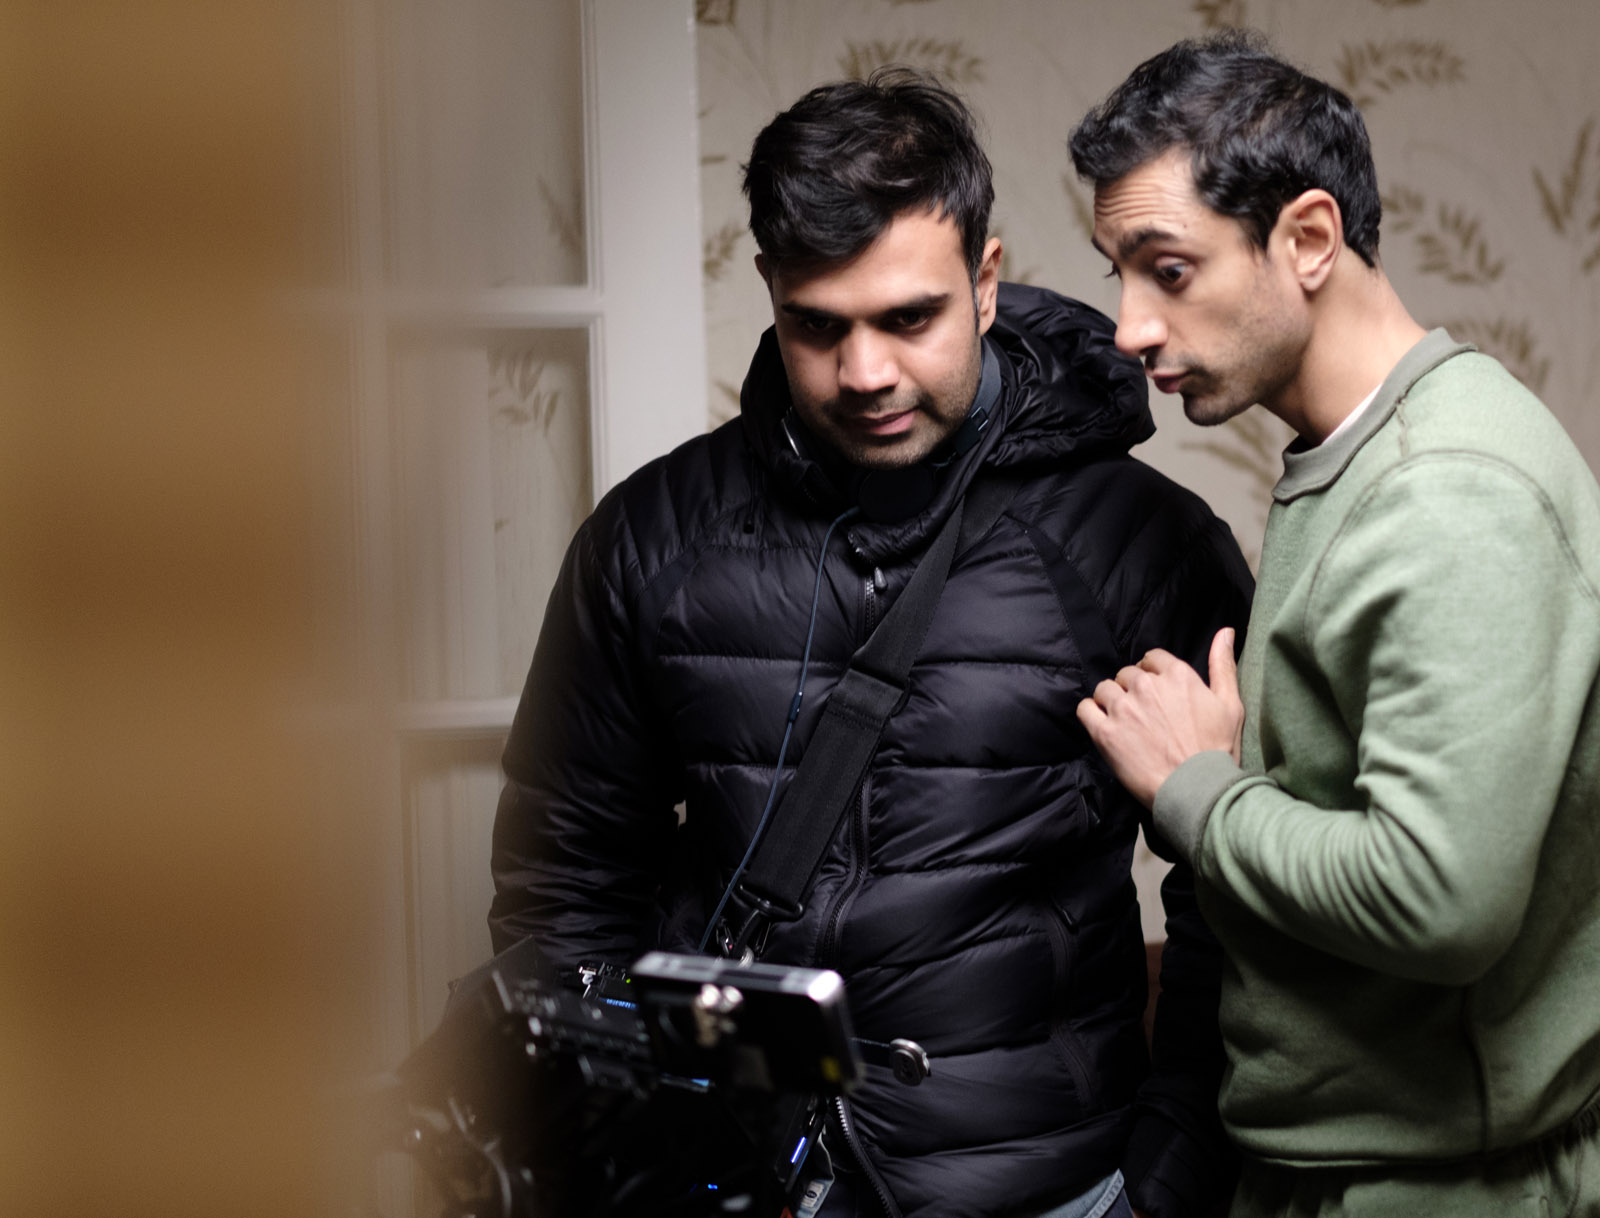 Director Bassam Tariq (left) with Riz Ahmed (who played Zed)